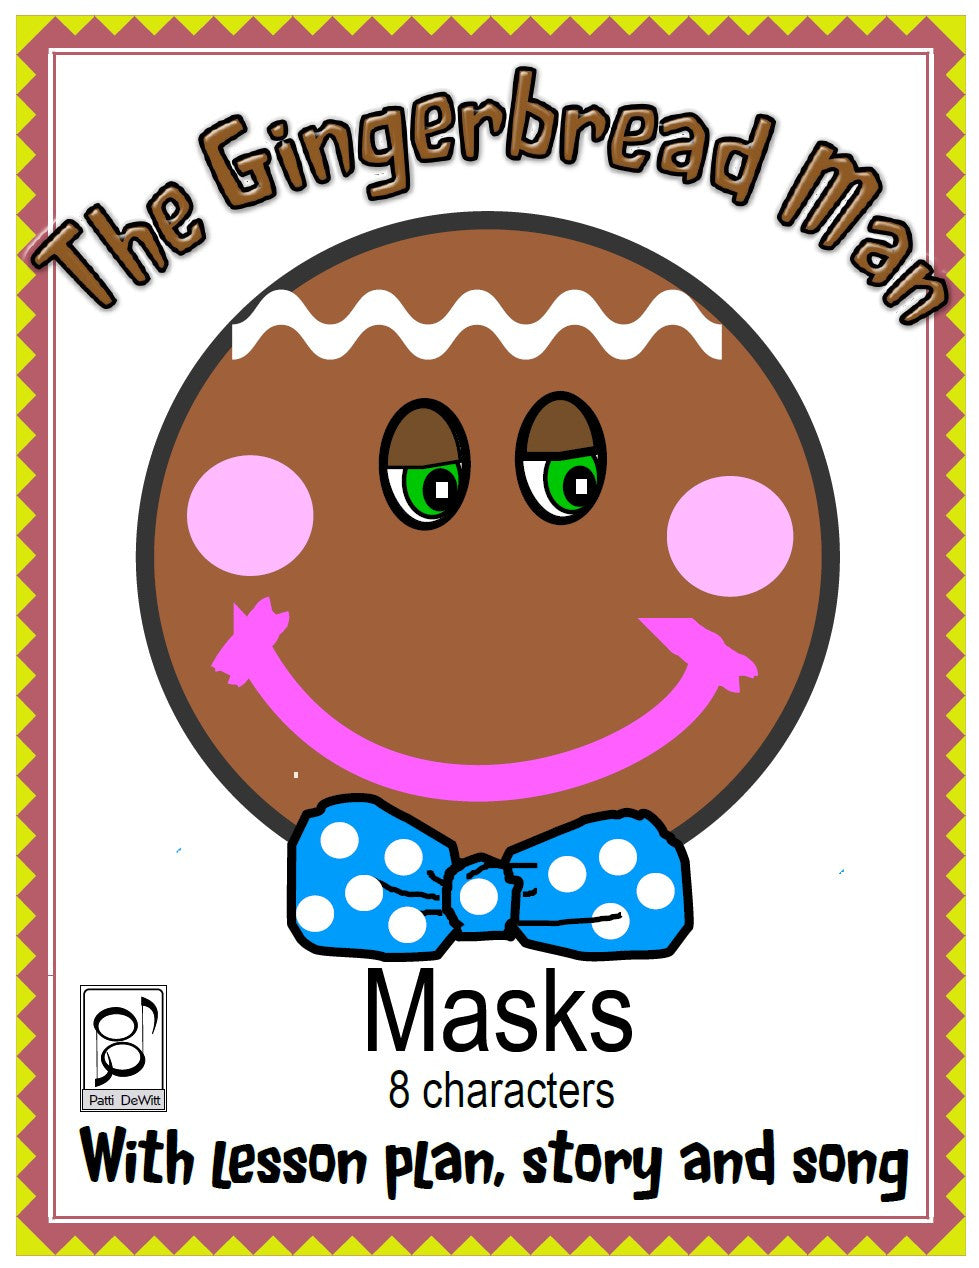 Gingerbread Masks Unit